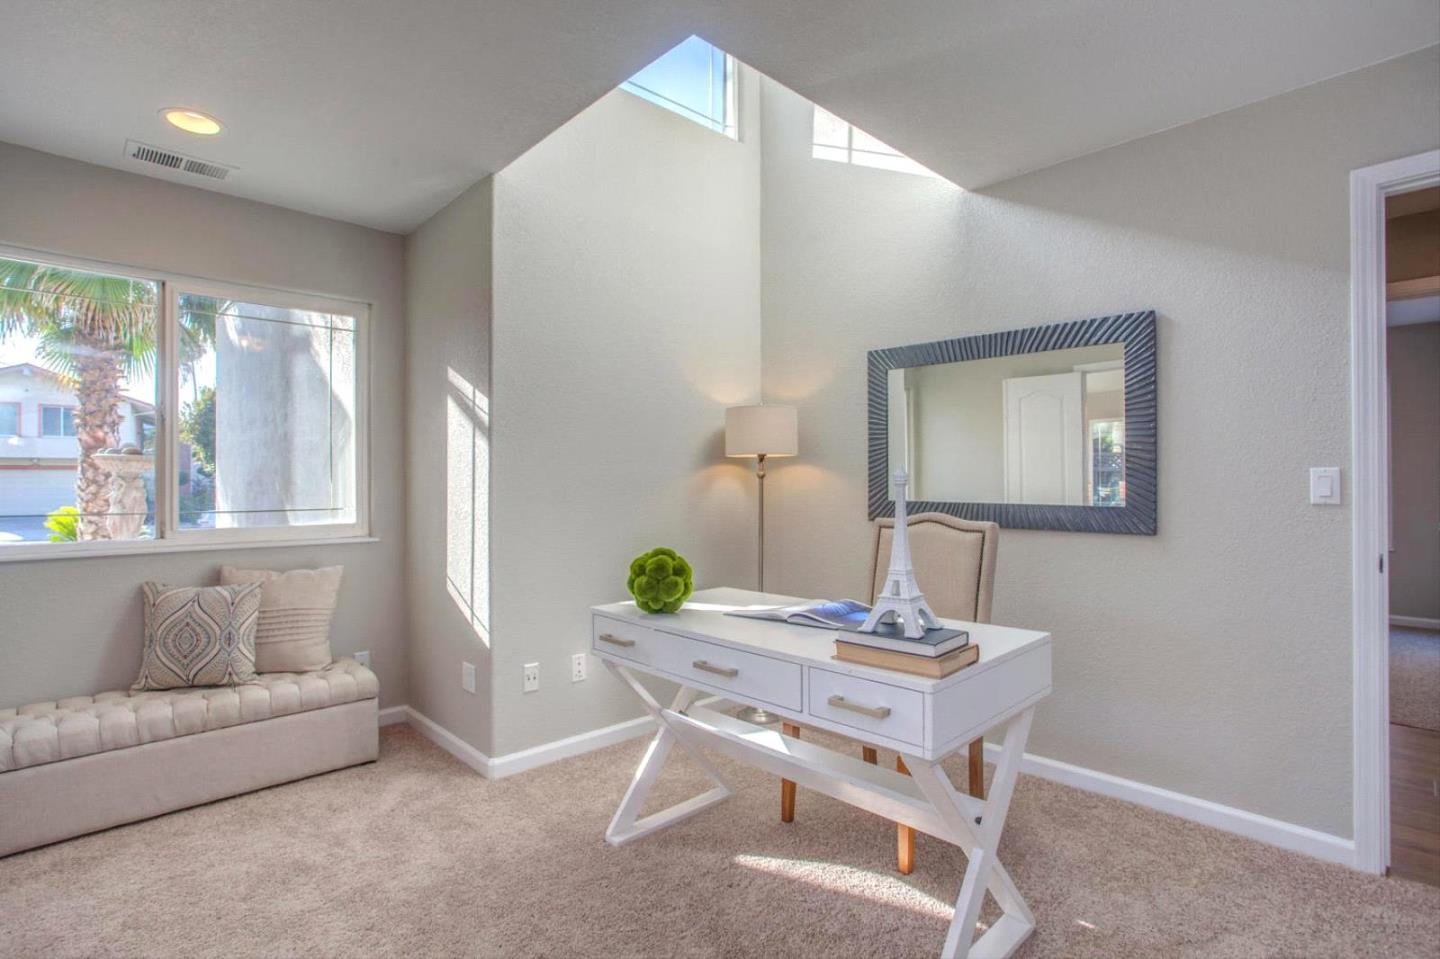 Additional photo for property listing at 5096 Bougainvillea Drive  San Jose, Kalifornien 95111 Vereinigte Staaten